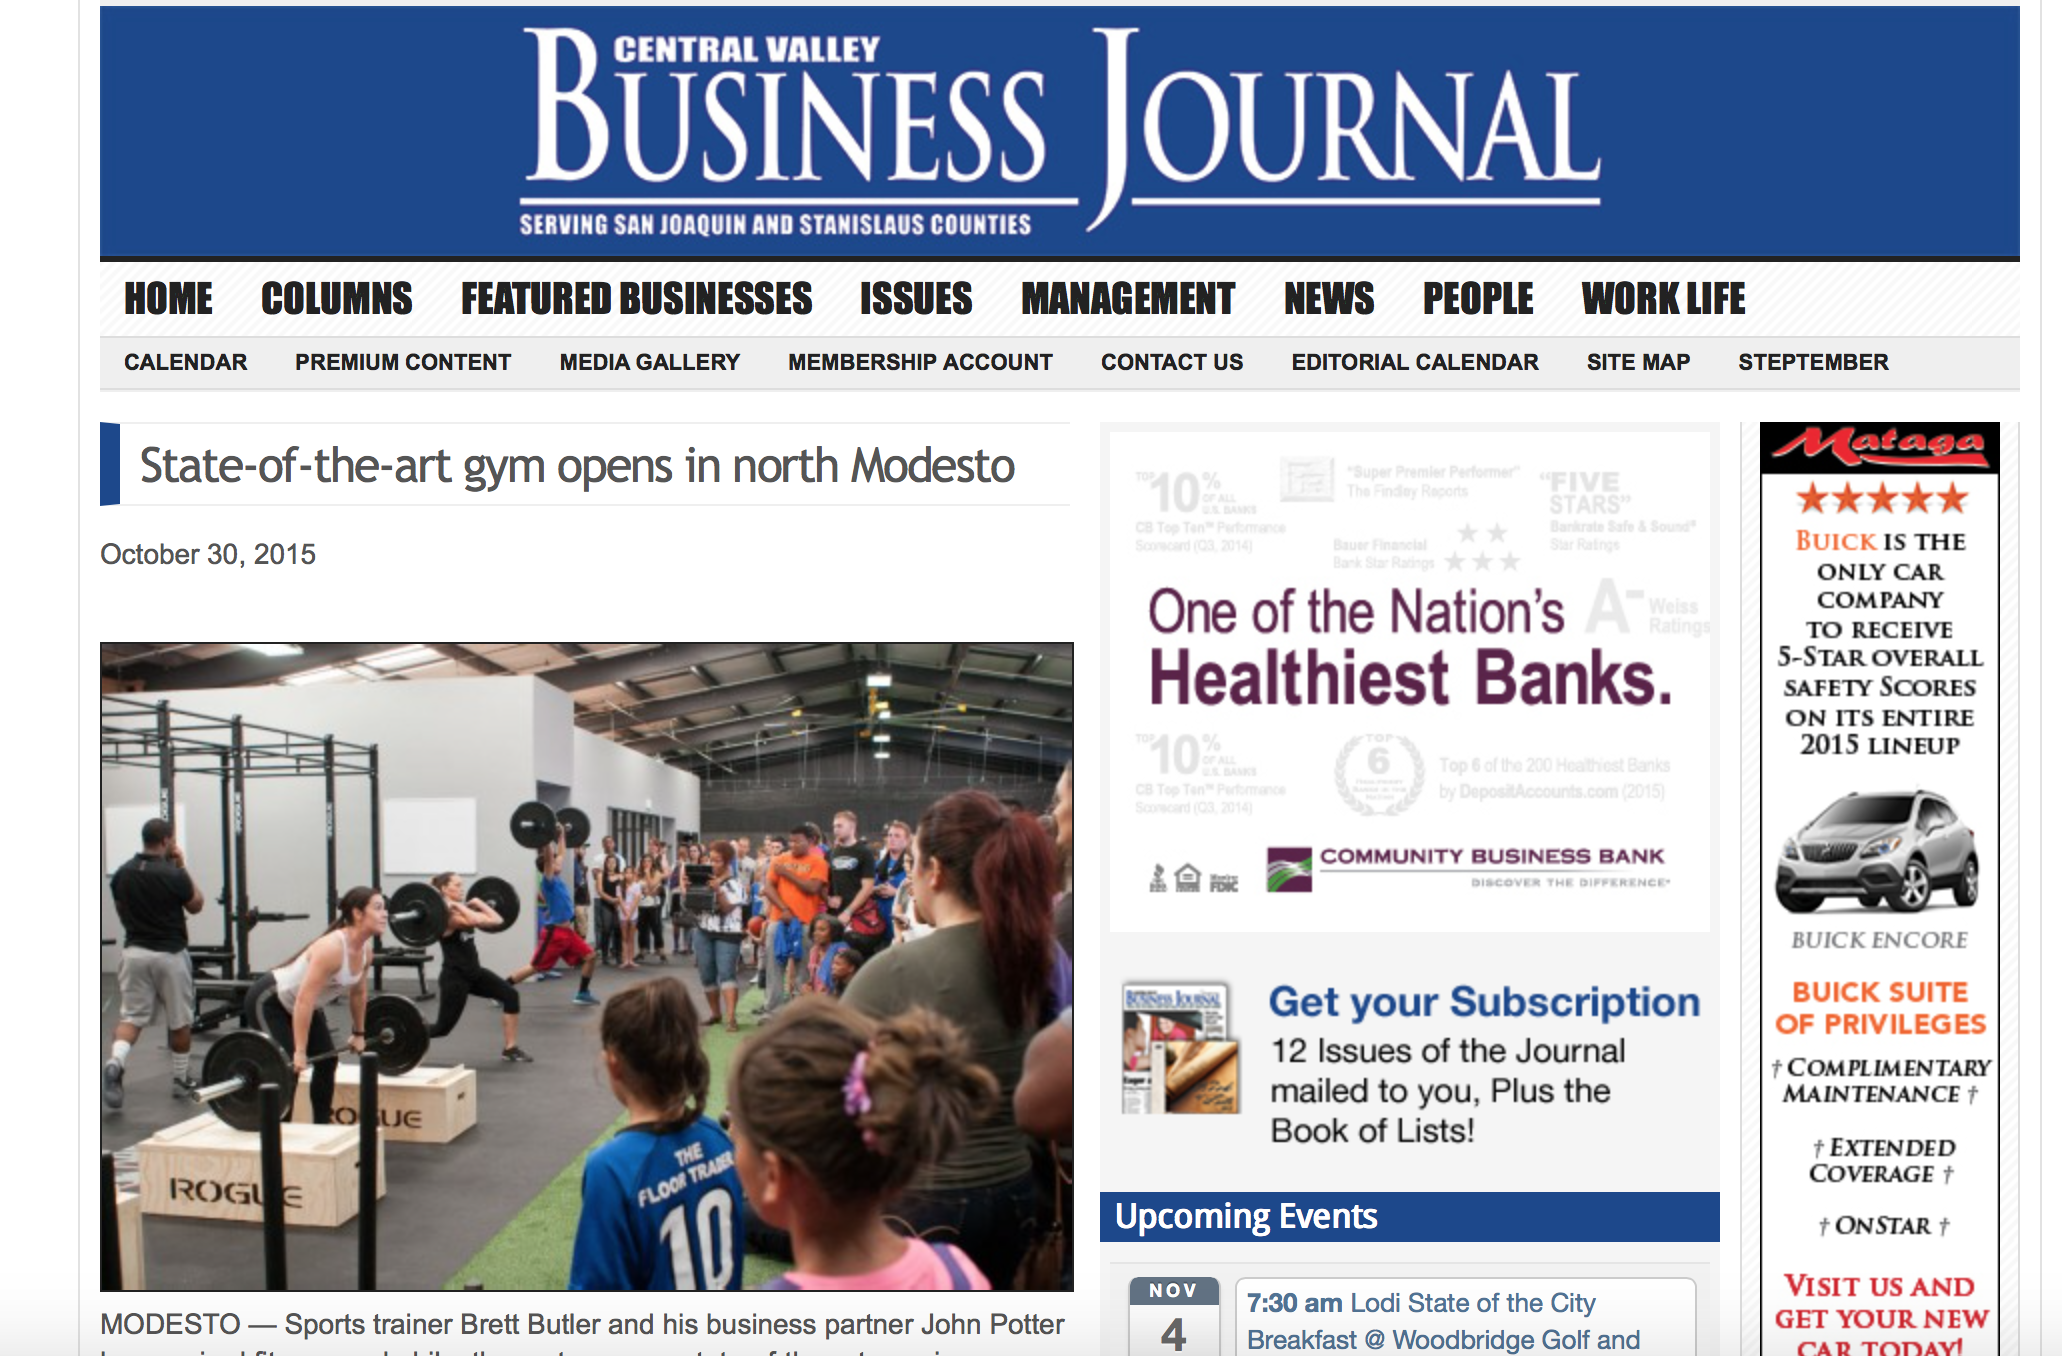 tpl featured in the central valley business journal